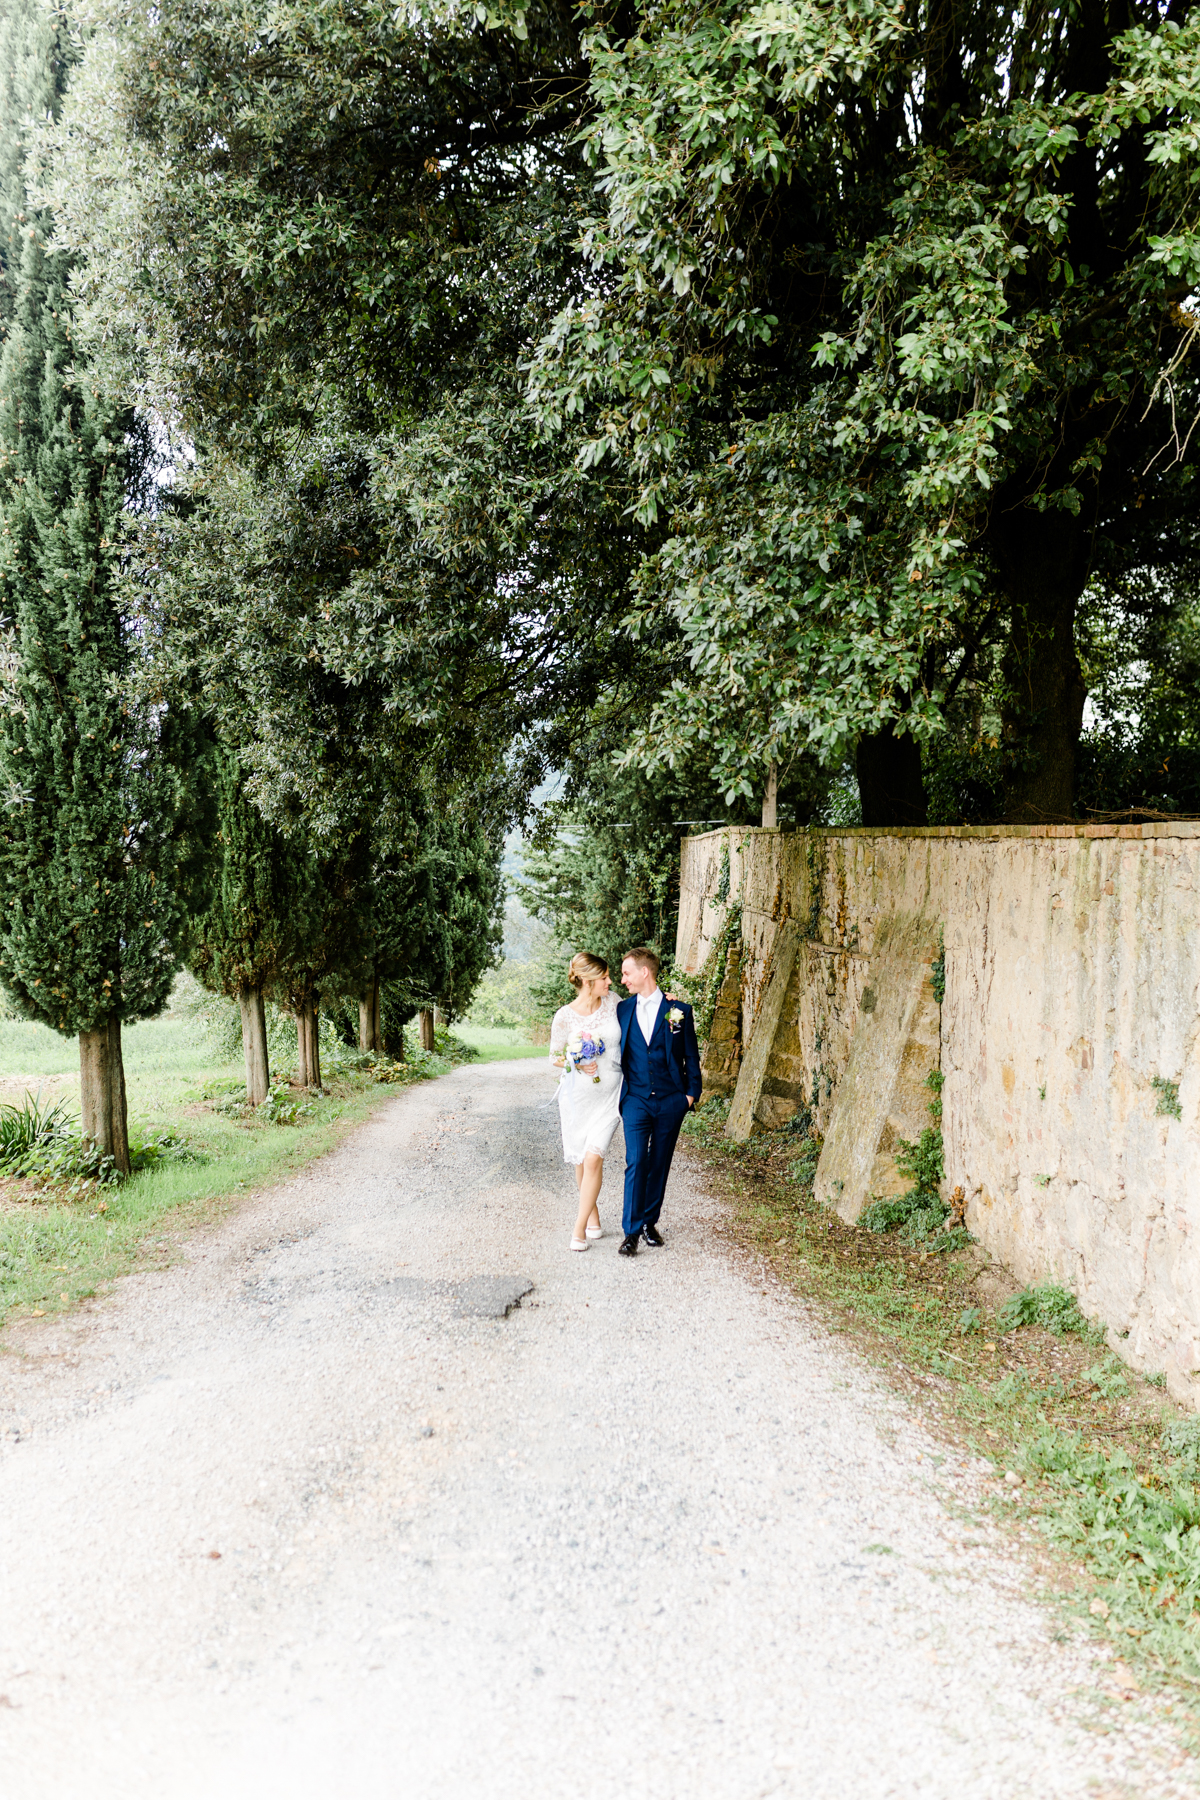 Romy_Alfons_Destination_Wedding_Tuscany_Toskana_Italy_me_him_photography-385